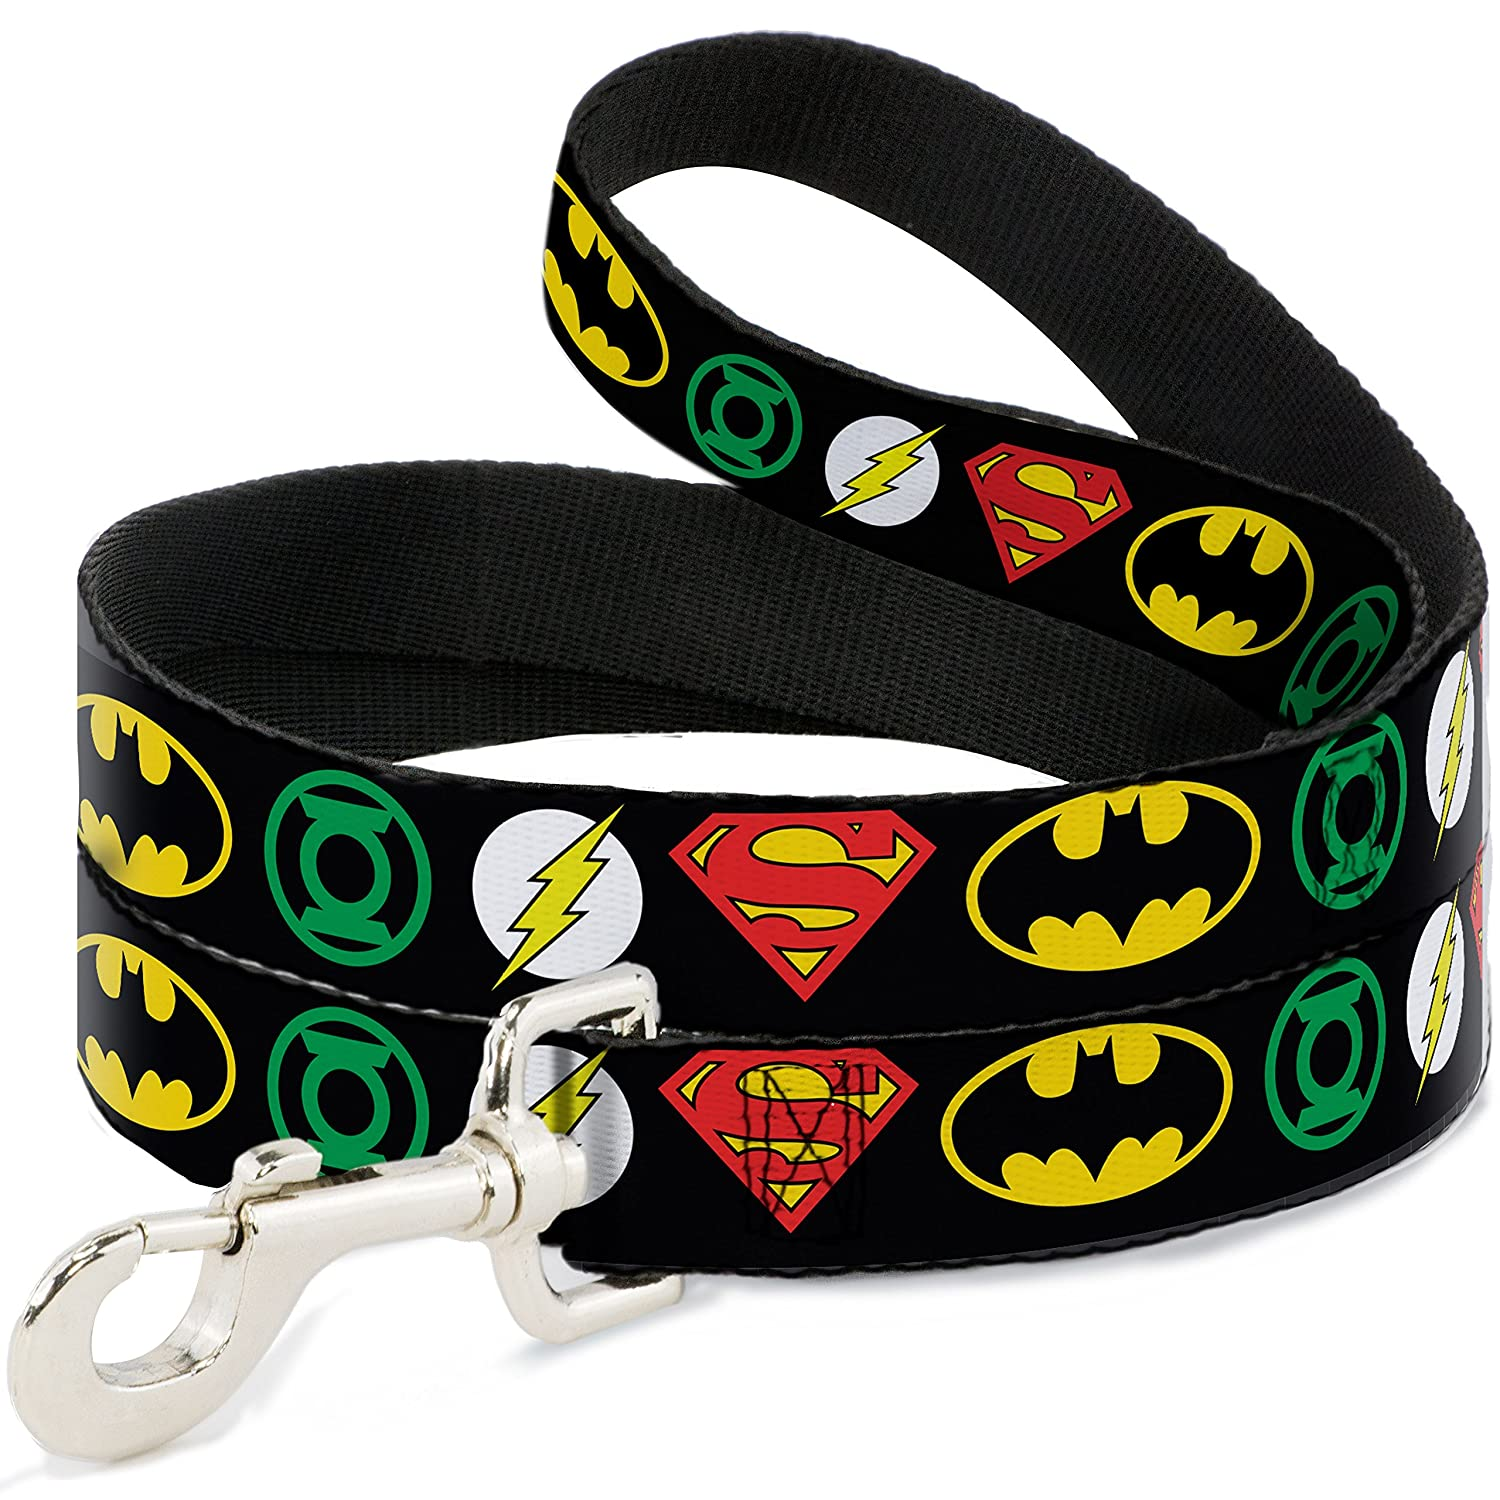 6Ft. Long  1.0 Inches wide Regular Buckle-Down Justice League Superhero Logos Dog Leash, 6'